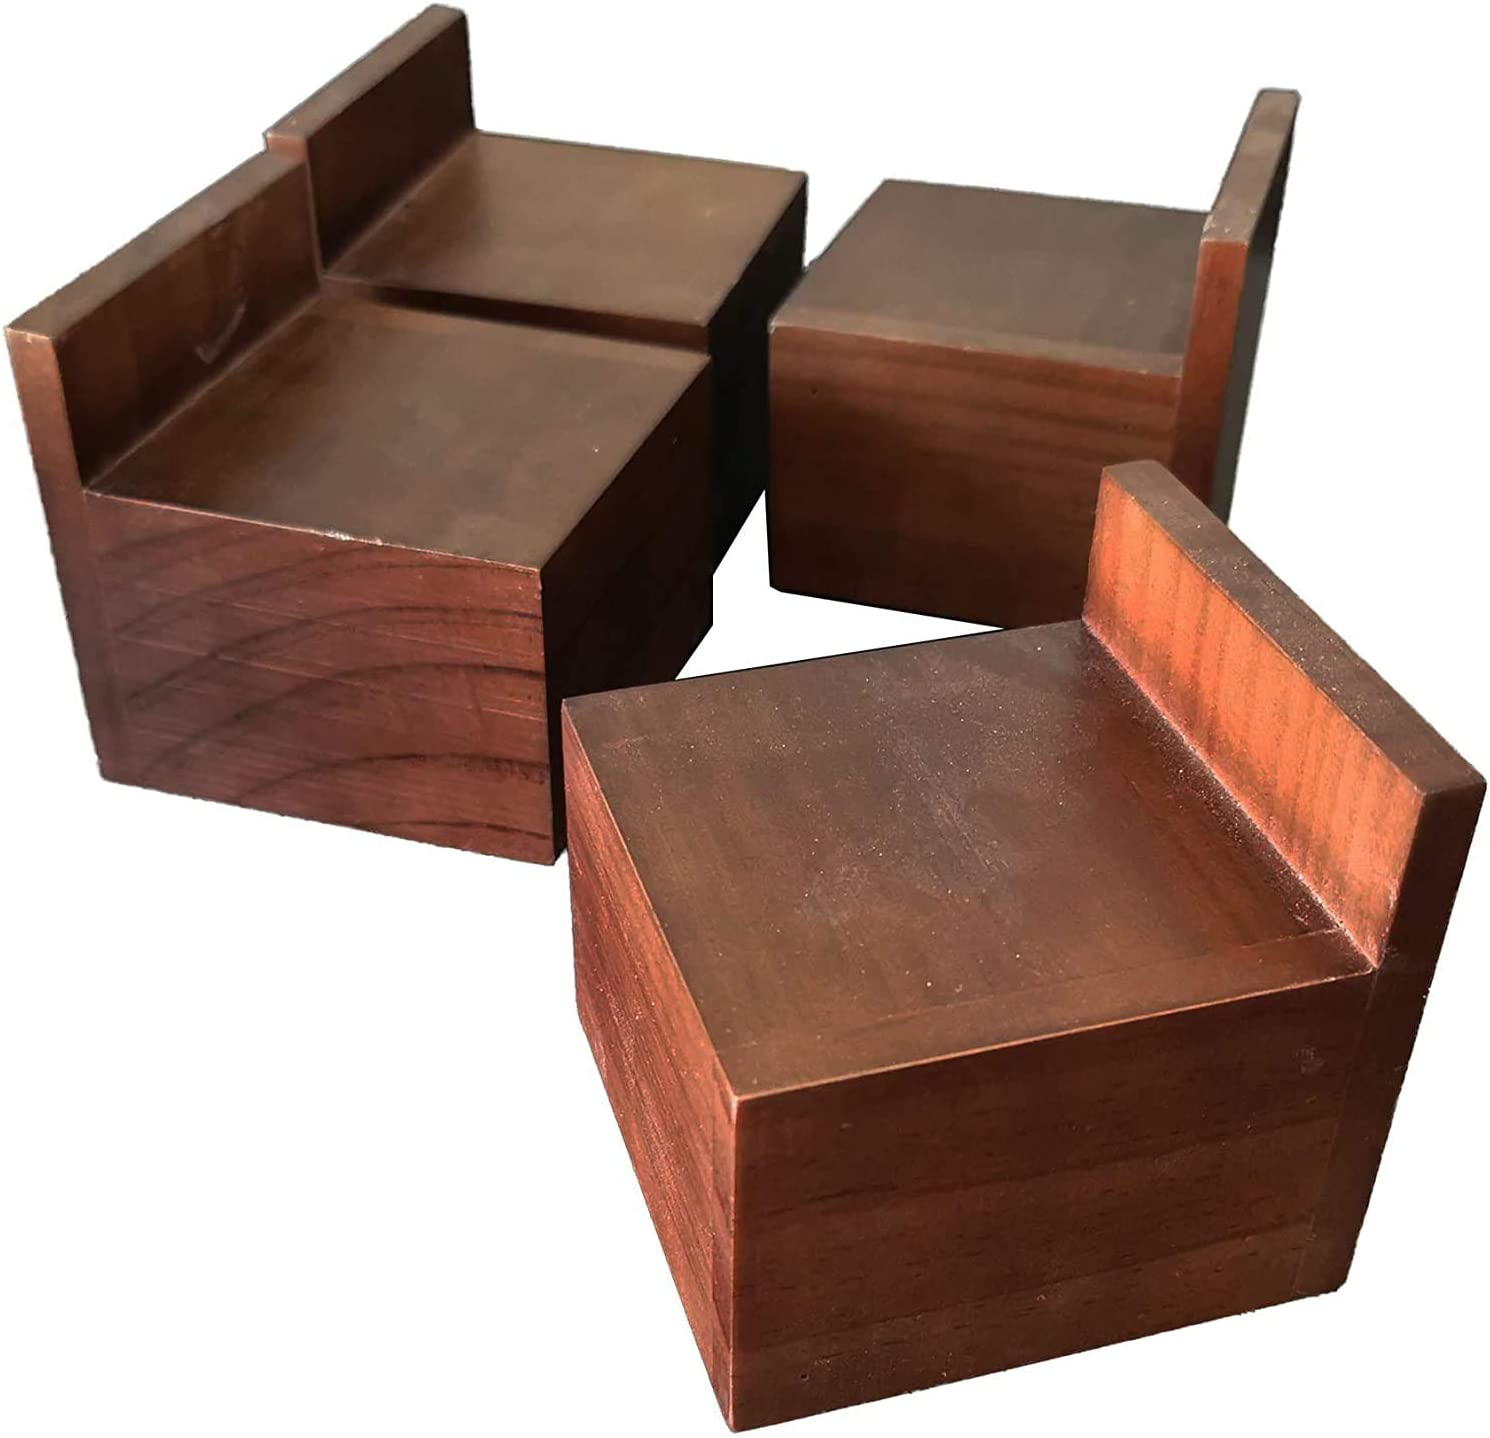 Xinshidai Homewares Pine Wood Bed Lifters, Solid Wood Sofa, Table, Bed Riser, and Furniture Lifter Width 3.4